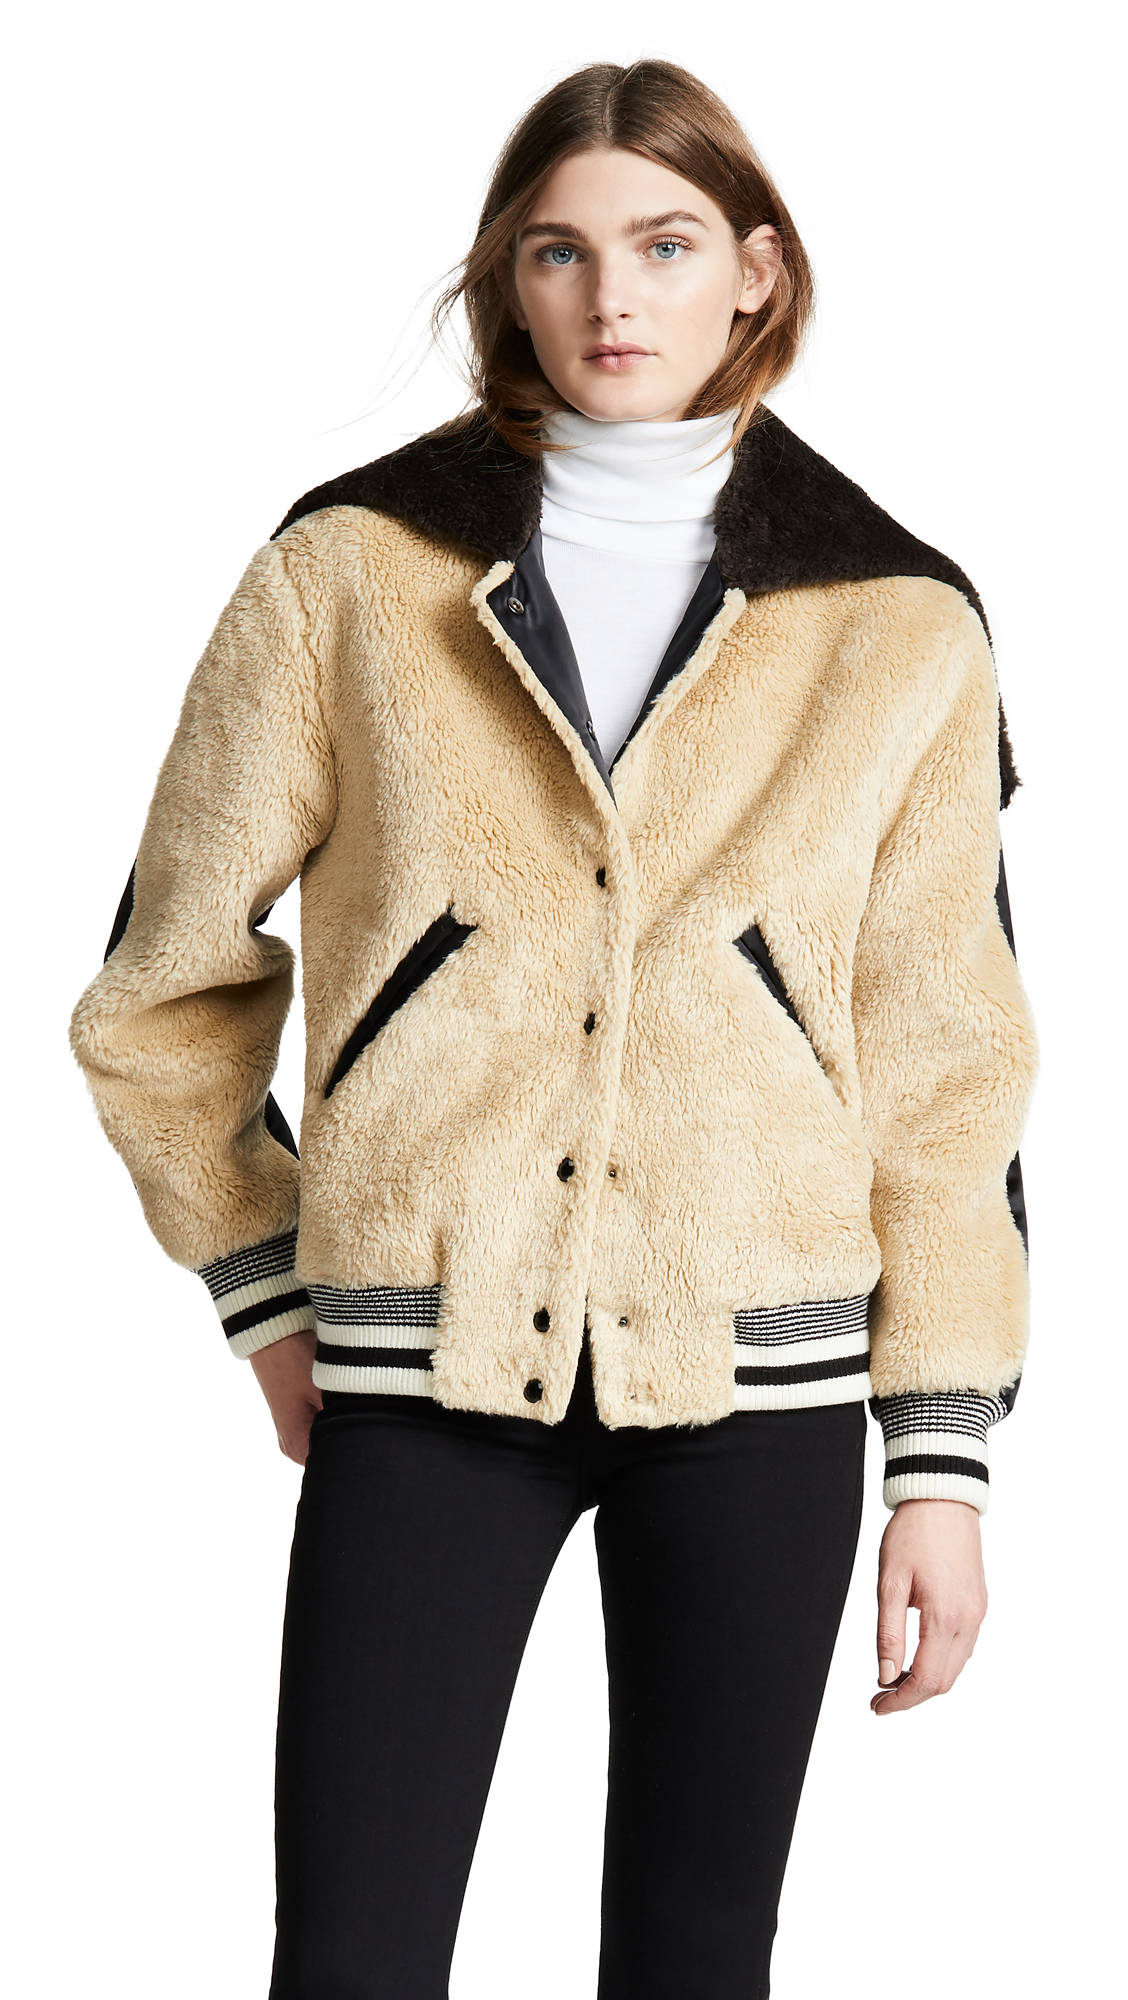 Photo of No. 21 Sports Jacket - buy No. 21 jackets online